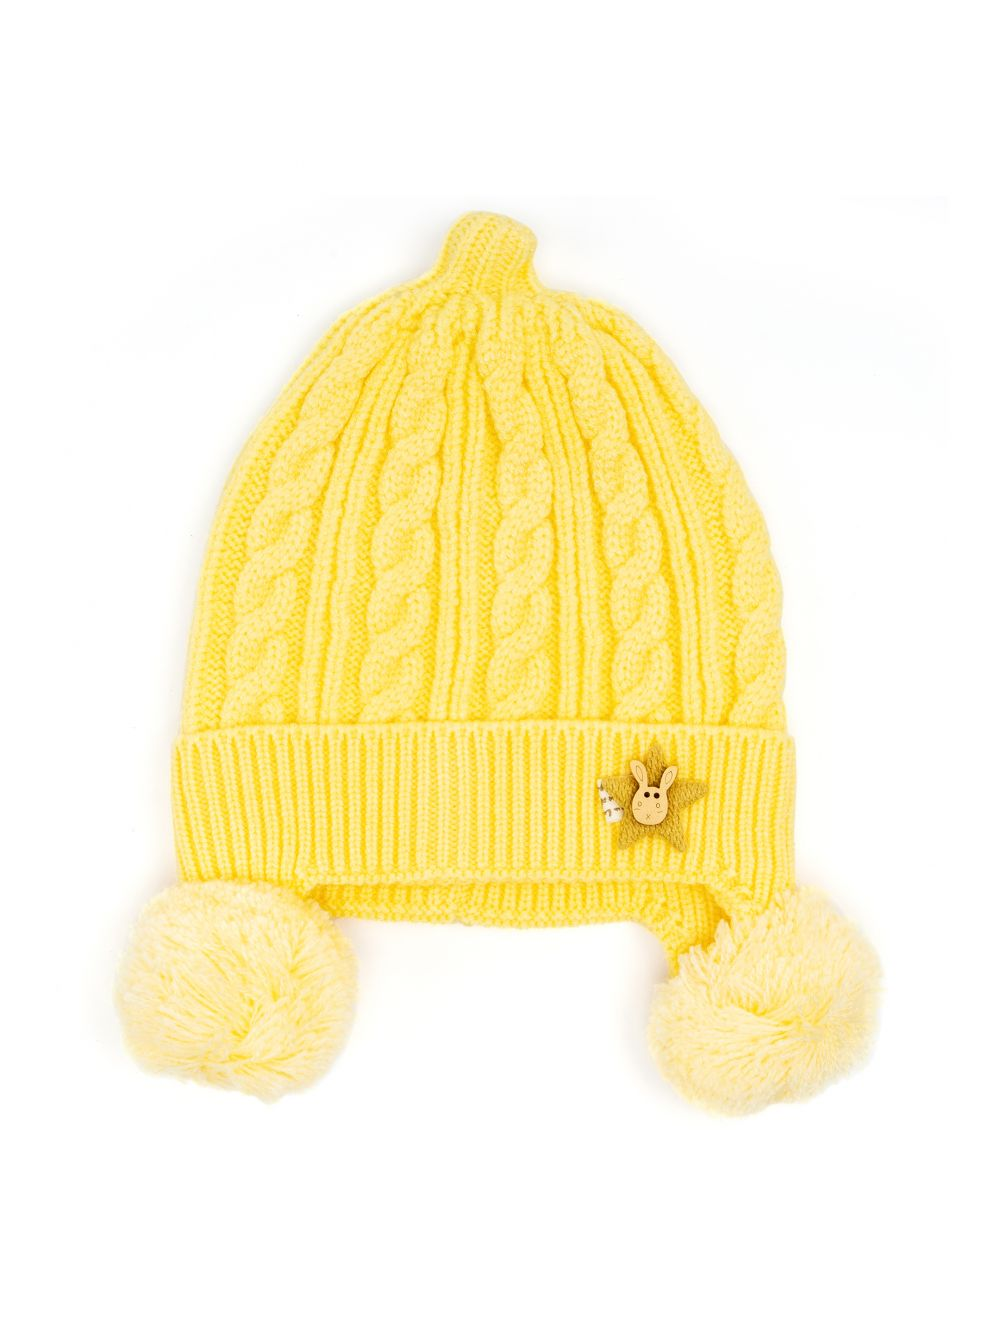 Baby Cap For Kids Wool Knitted Warm Hats Winter Knit Hat Casual (0 to 3 months)